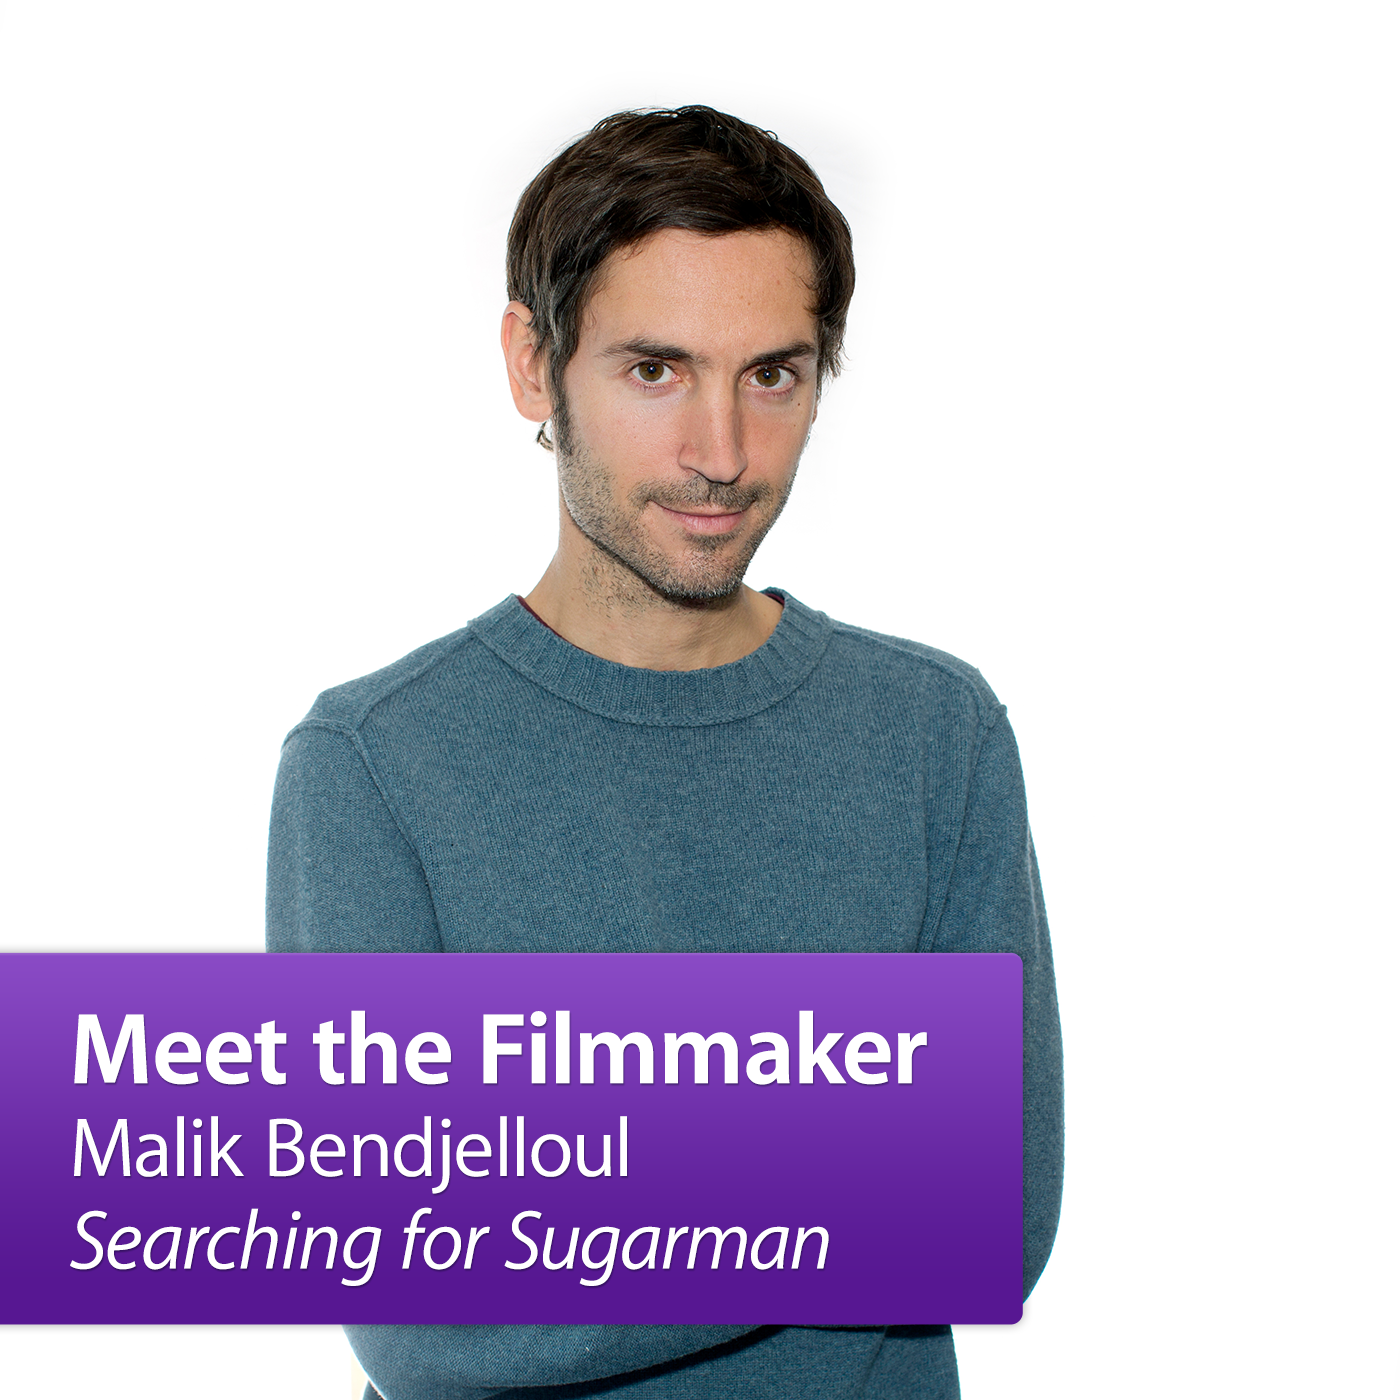 Malik Bendjelloul: Meet the Filmmaker